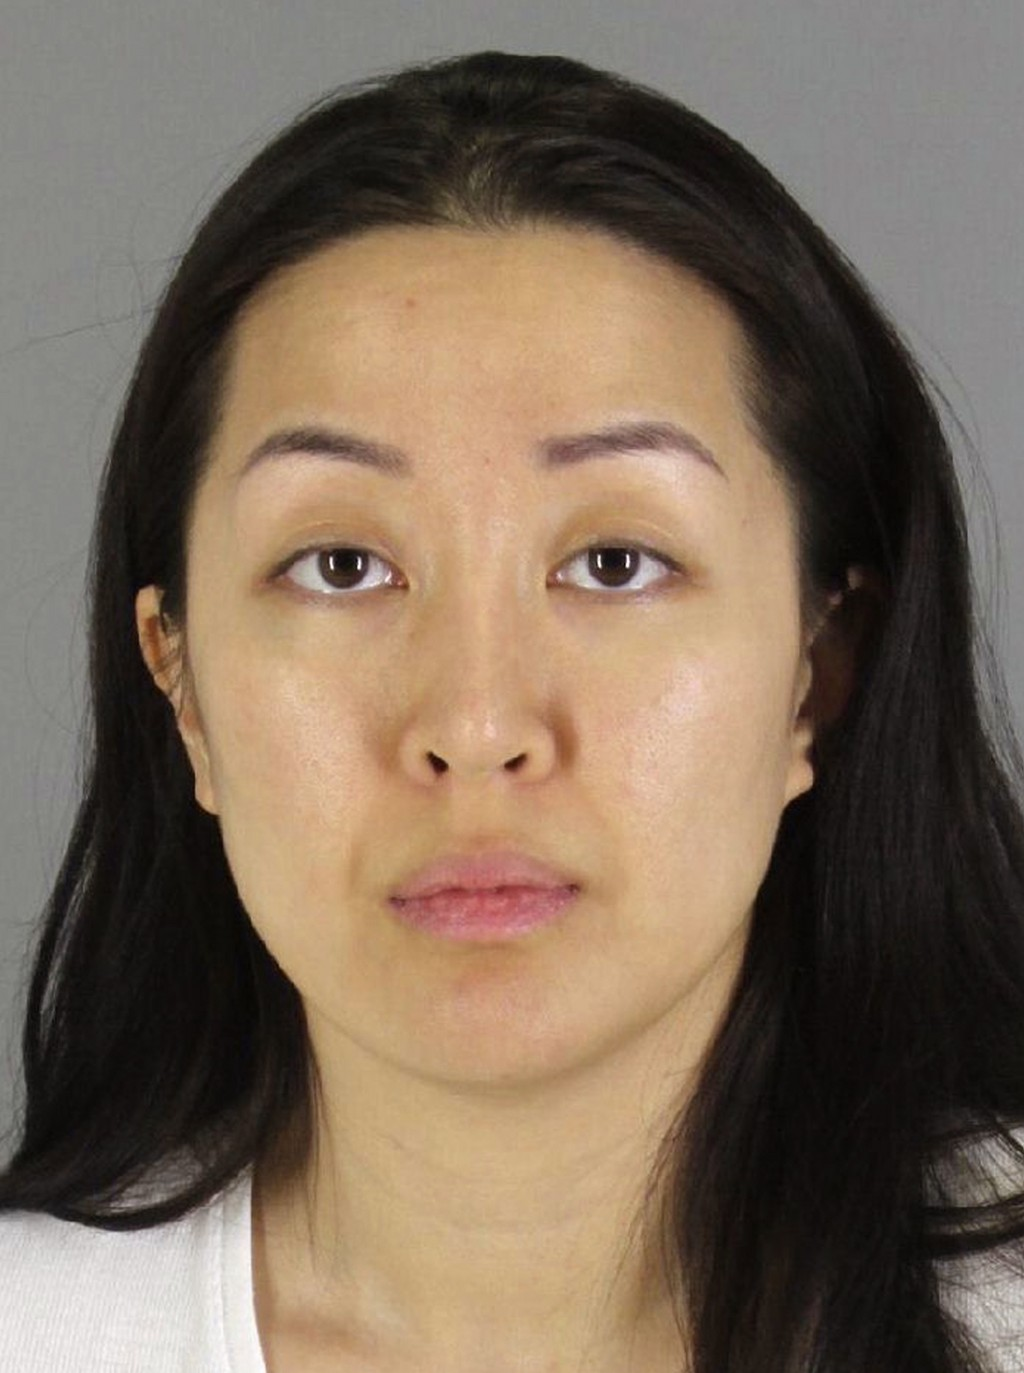 FILE - This undated booking photo provided by the San Mateo County, Calif., Sheriff's Office shows Tiffany Li. The trial of Li, a Chinese real estate